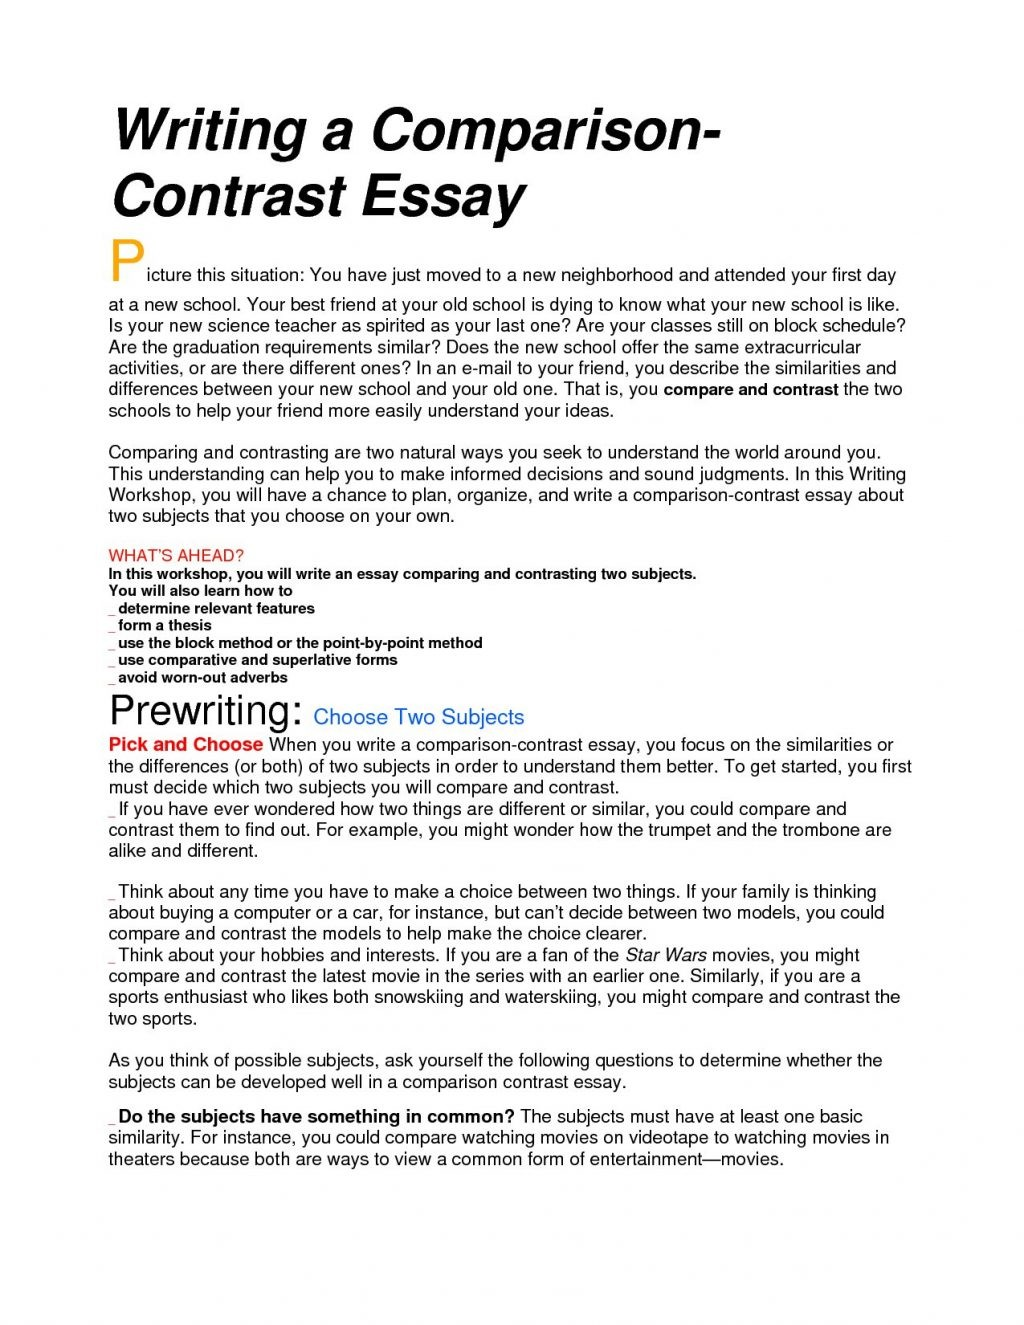 009 Sythesis Of Nanopolymeric Cheap Thesis Statement Proofreading Compare And Contrasty Topics For High Schoolents Photo Comparisonys Esl How To Teach The 1024x1325 Unforgettable Comparison Contrast Essay School Prompts Middle Large